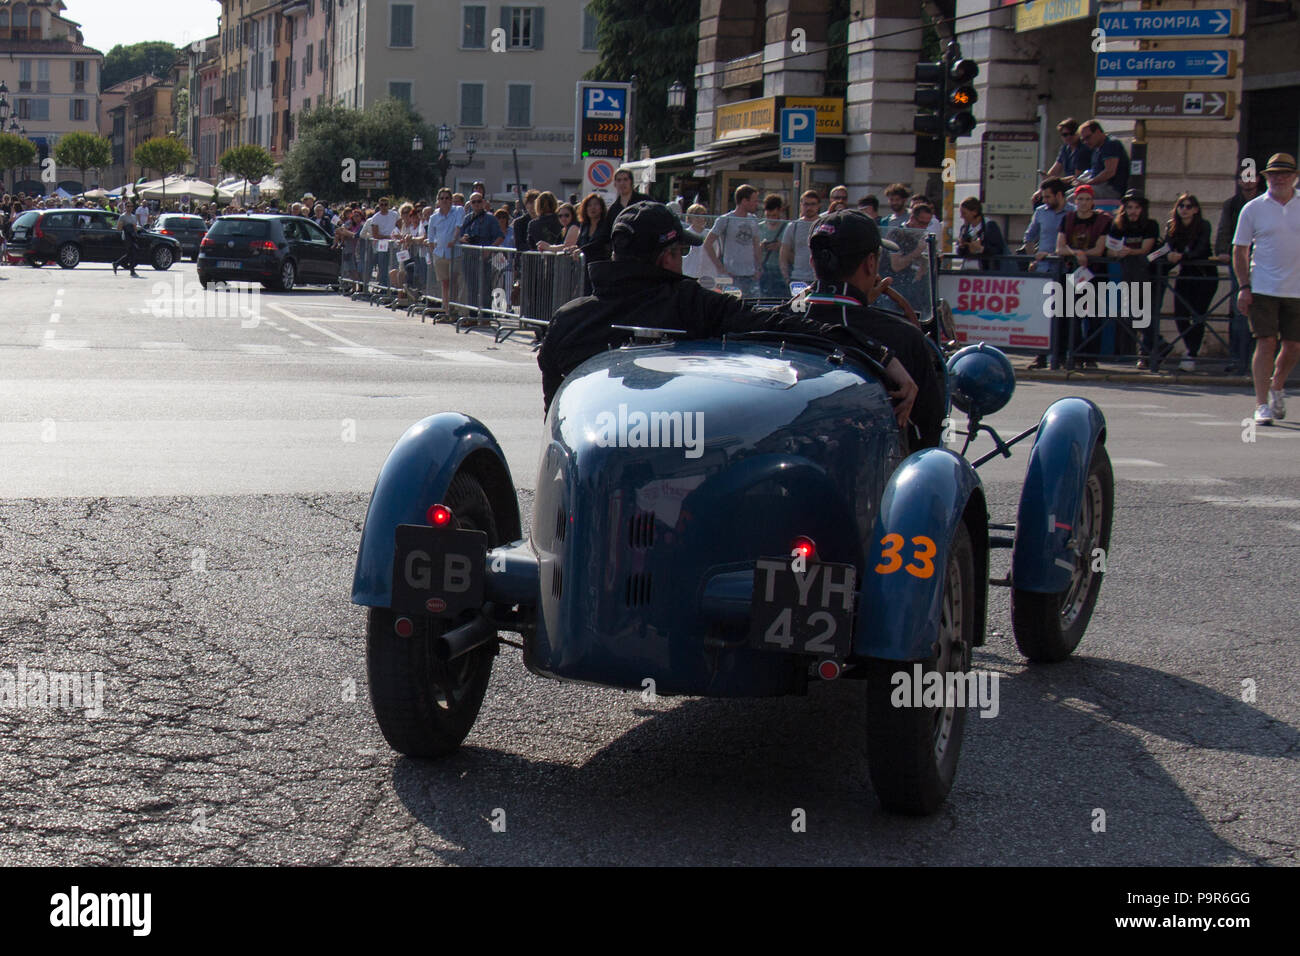 Brescia, Italy - May 19 2018: BUGATTI T 40 1927 is an old racing car in rally Mille Miglia 2018, live shot at the famous italian historical race on Ma - Stock Image